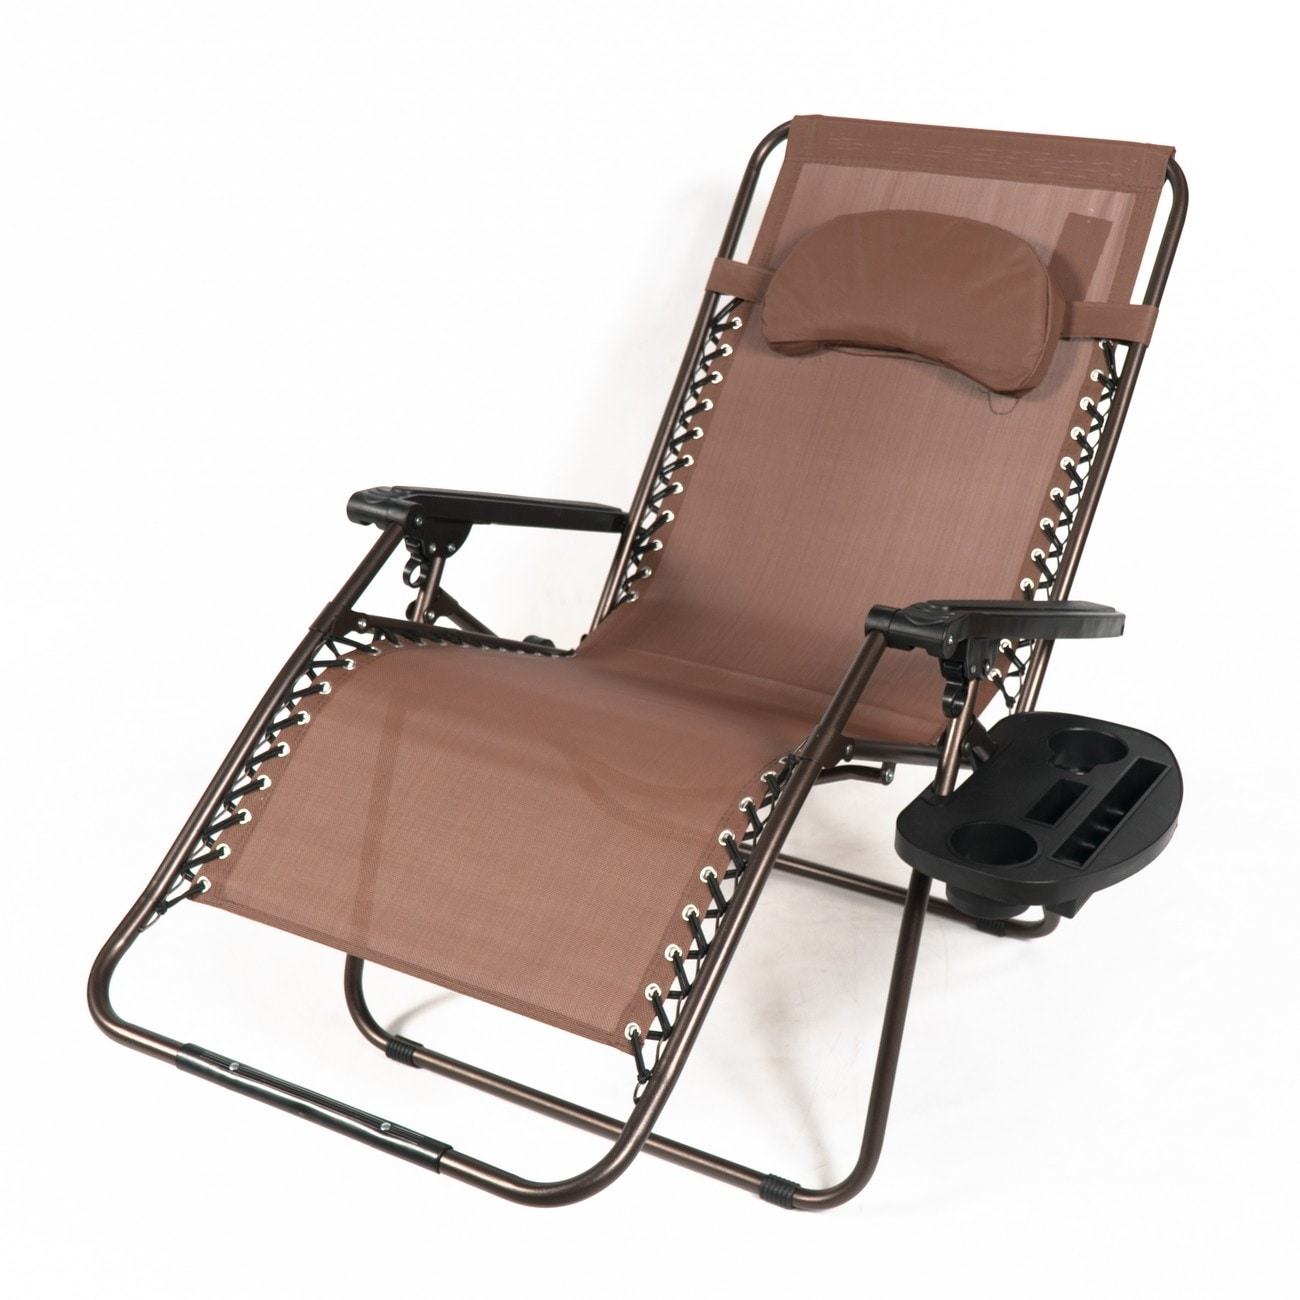 Exceptionnel Belleze XL Oversized Zero Gravity Chair Recliner Adjustable Lounge Padded  With Pillow Drink Cup Holder, Brown